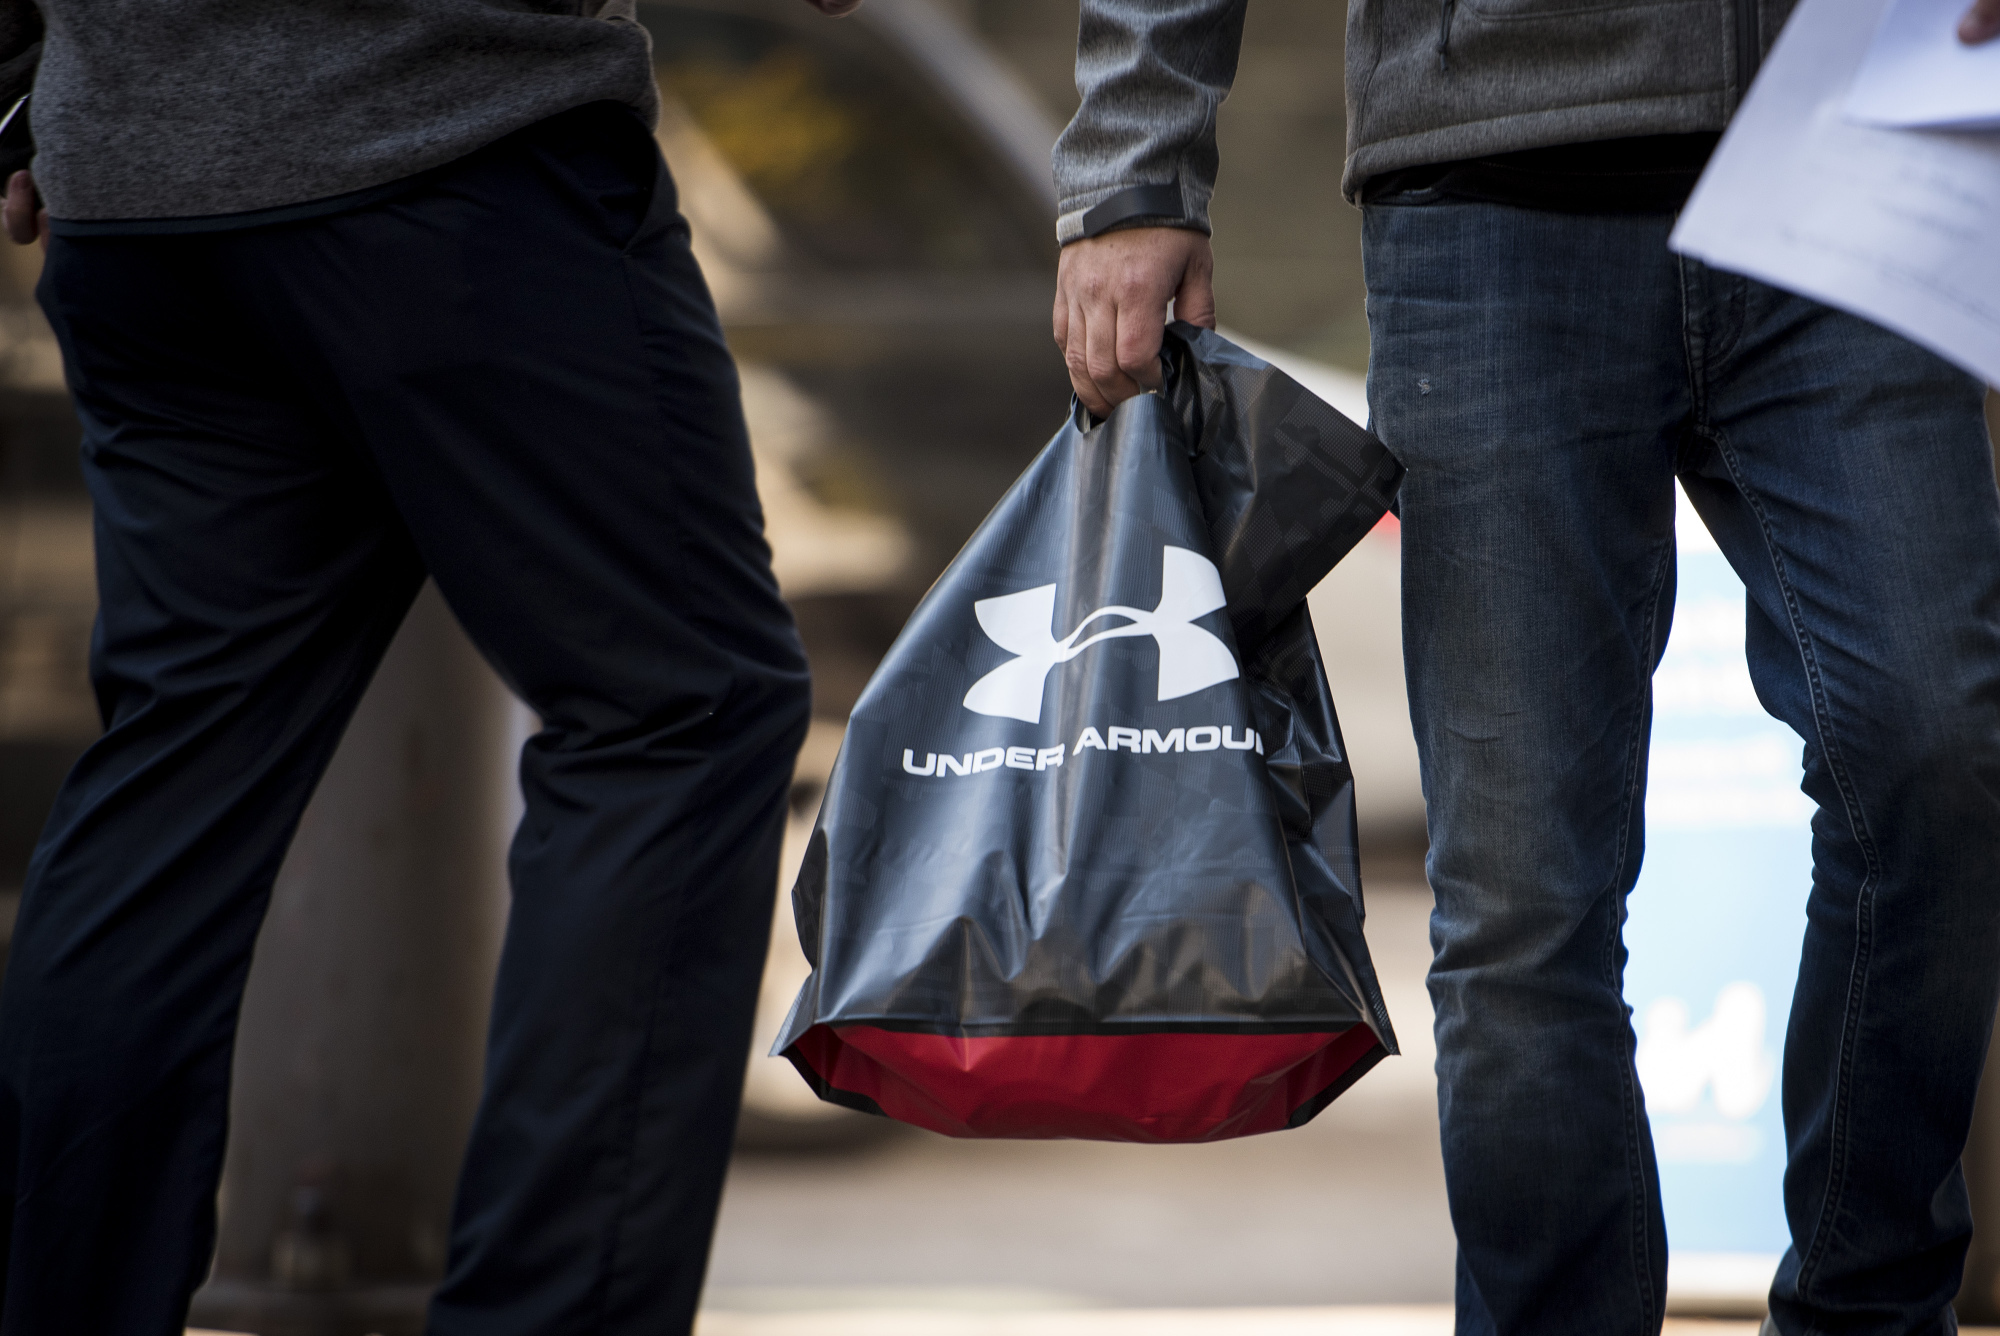 A pedestrian carries an Under Armour Inc. shopping bag in downtown Chicago, Illinois.